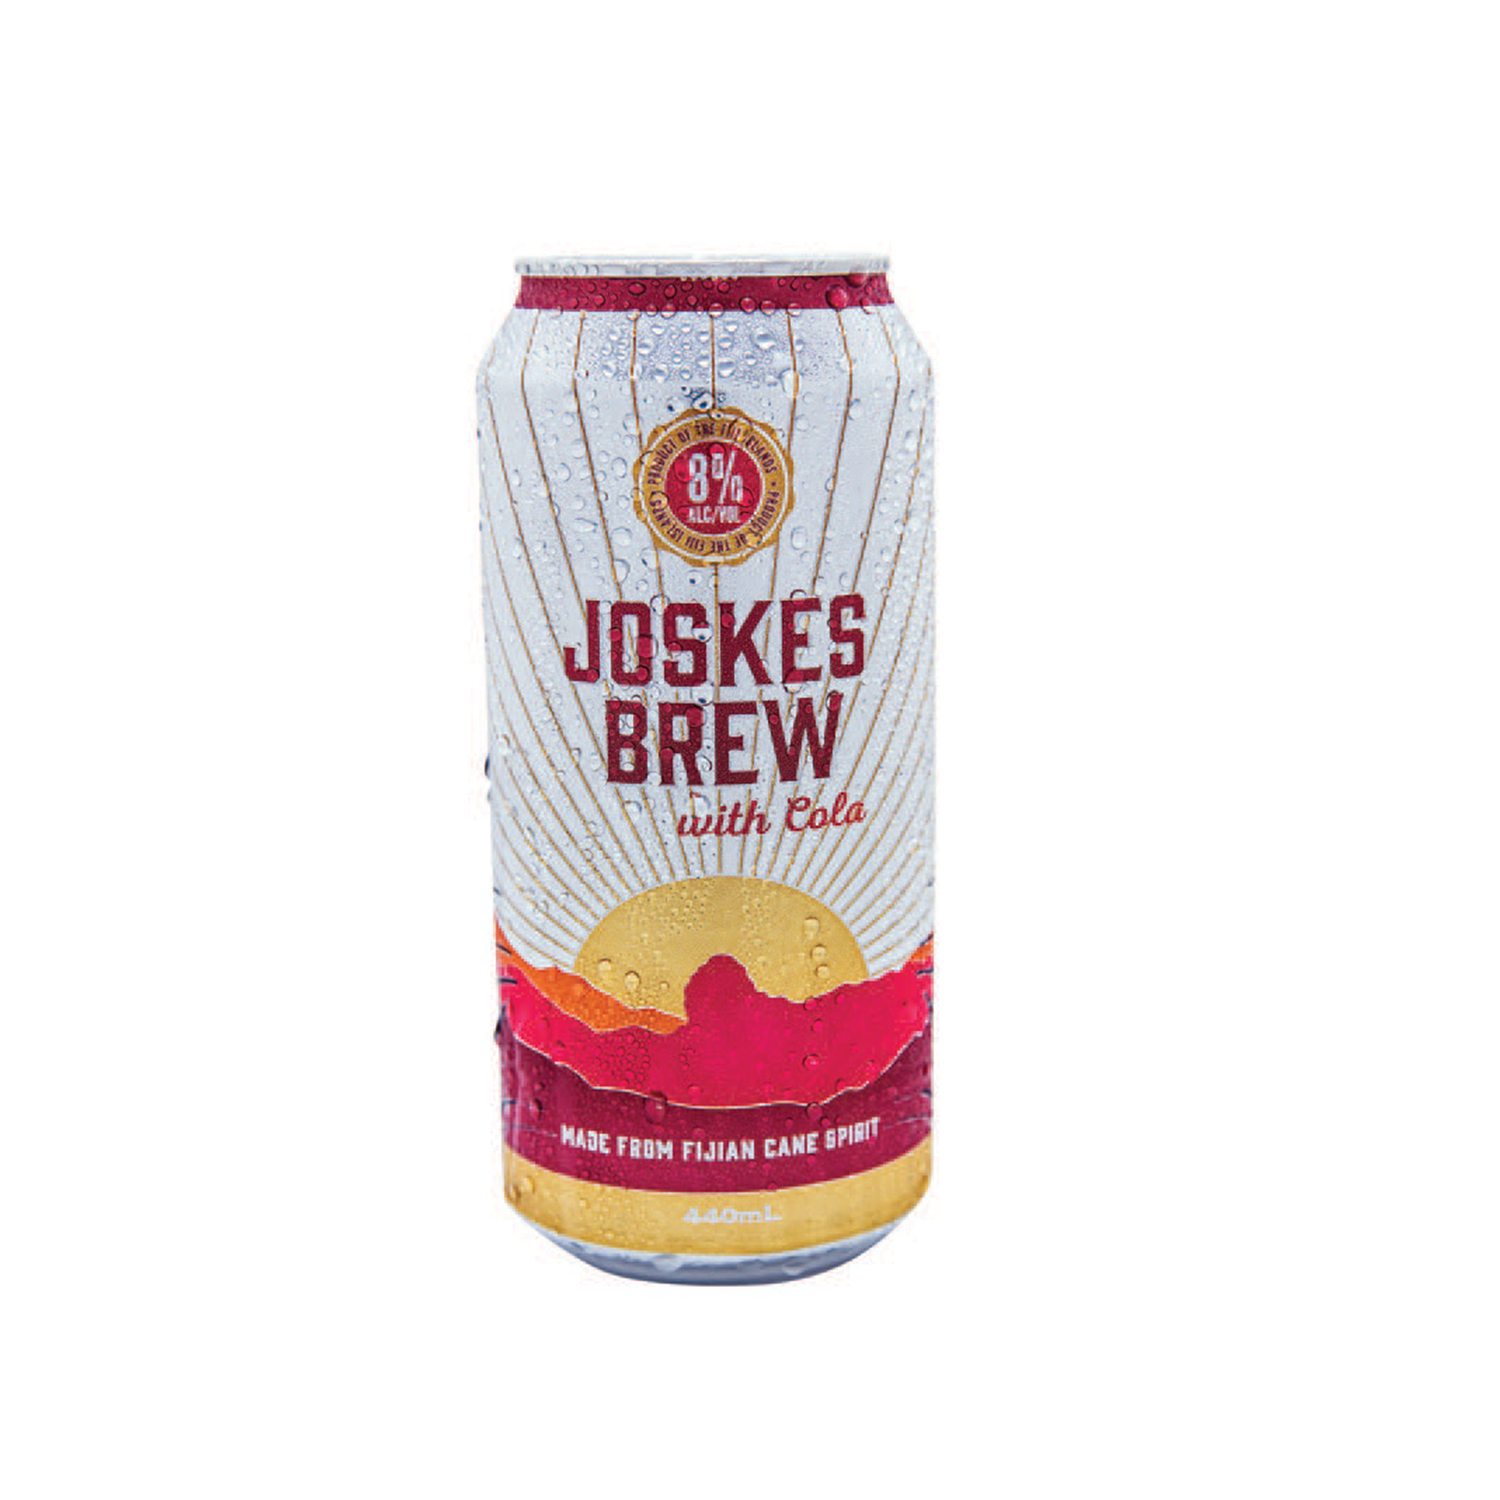 Joskes Brew with Cola 440ml